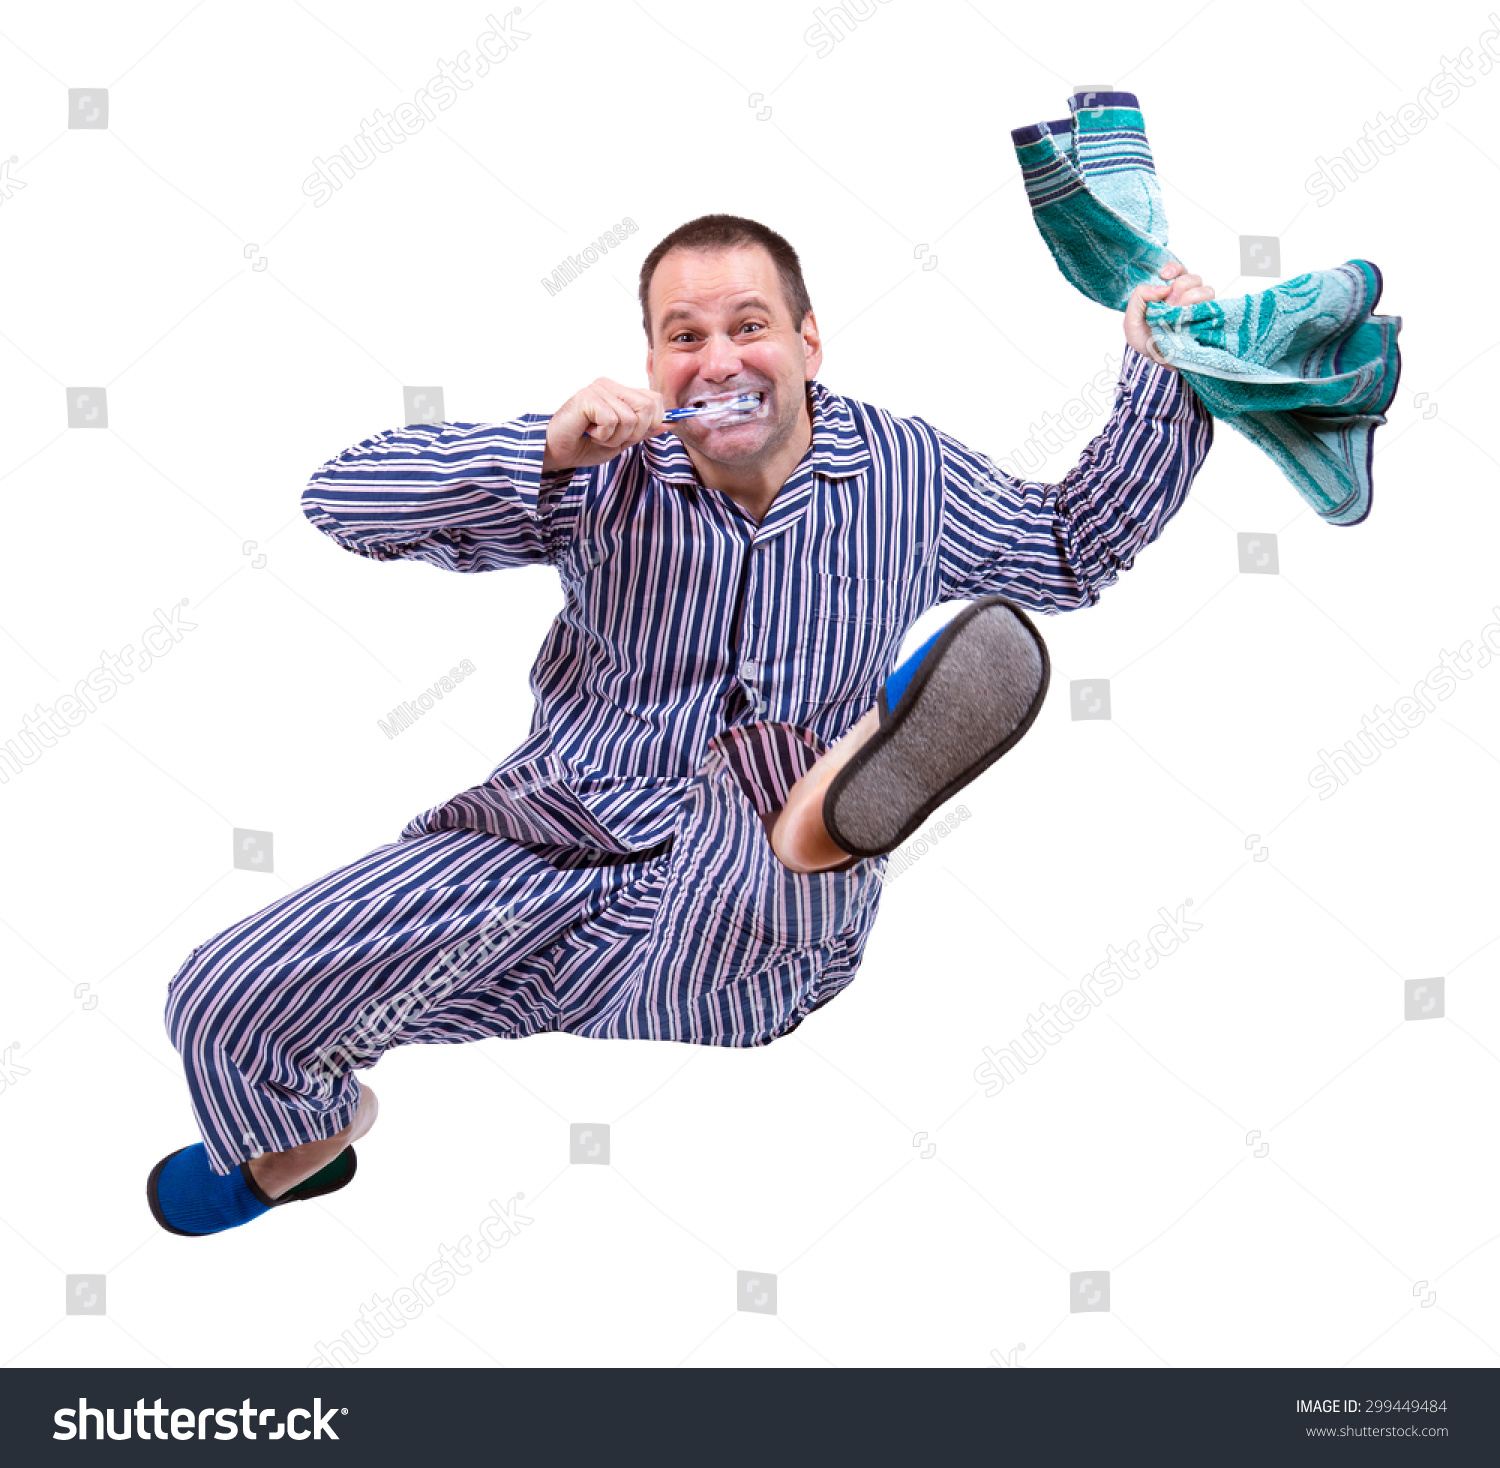 cb8332d7c8 Man in pajamas jumping isolated on a white background. Morning rush. A man  cleans